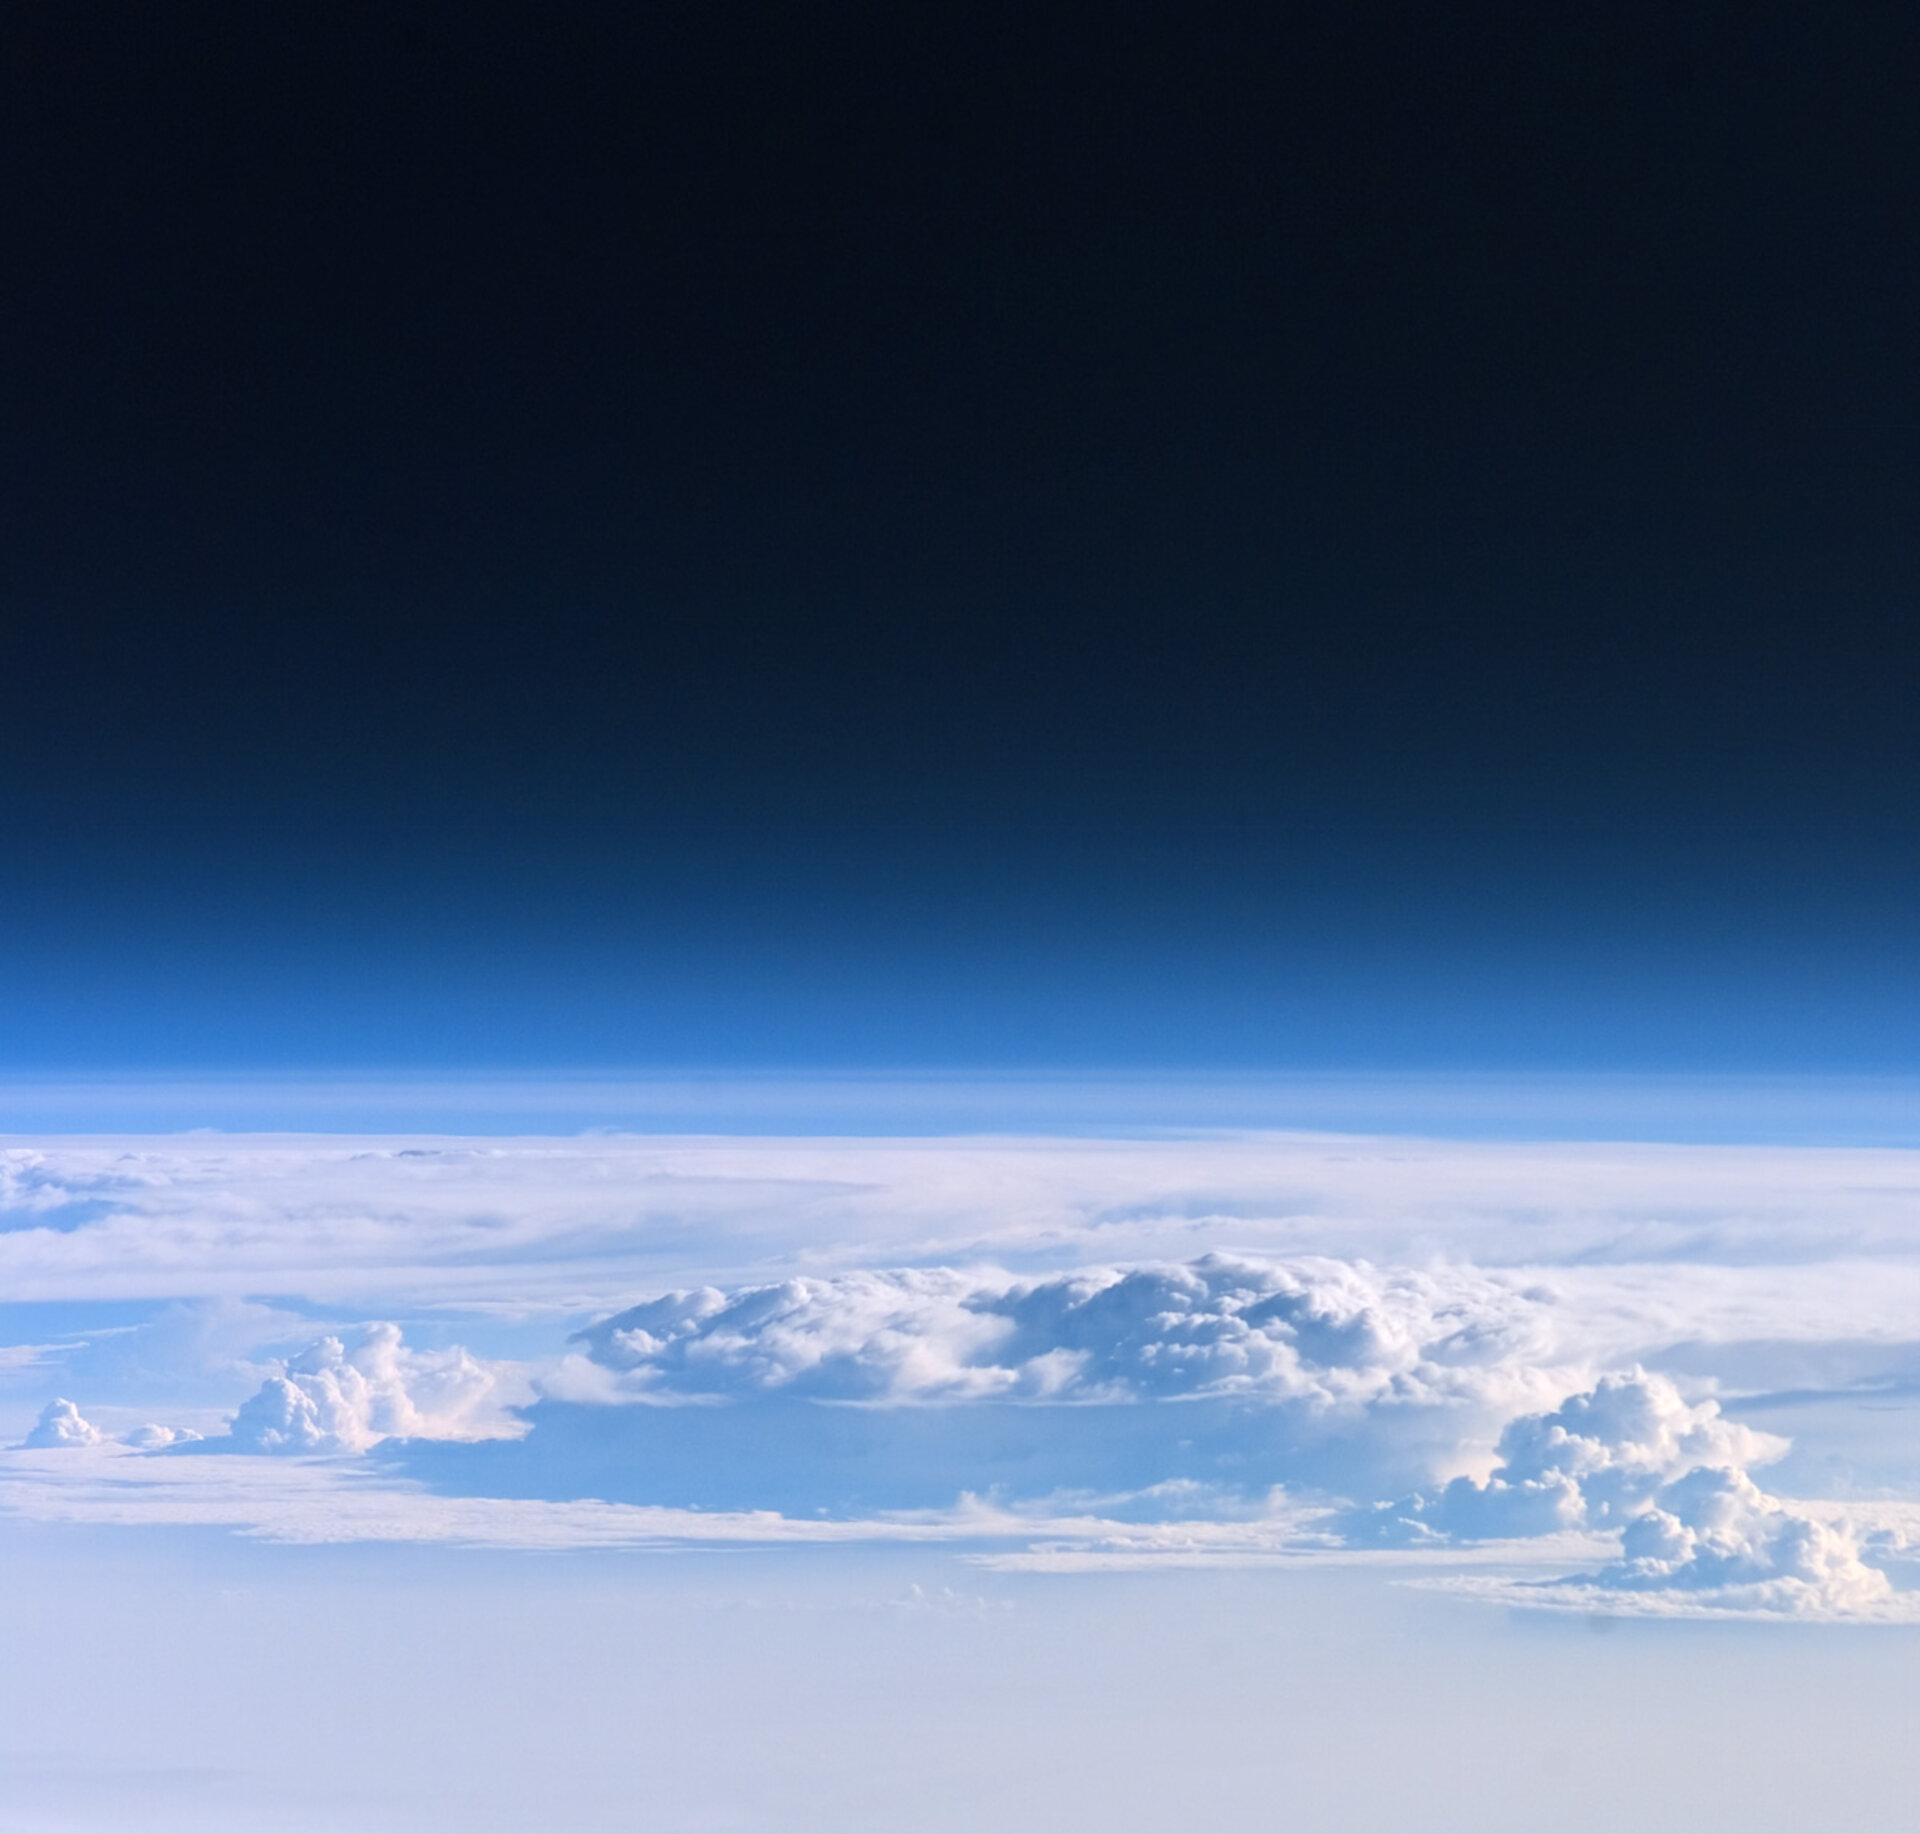 Second photo sent by Reiter showing a view of the Earth's atmosphere from on board ISS